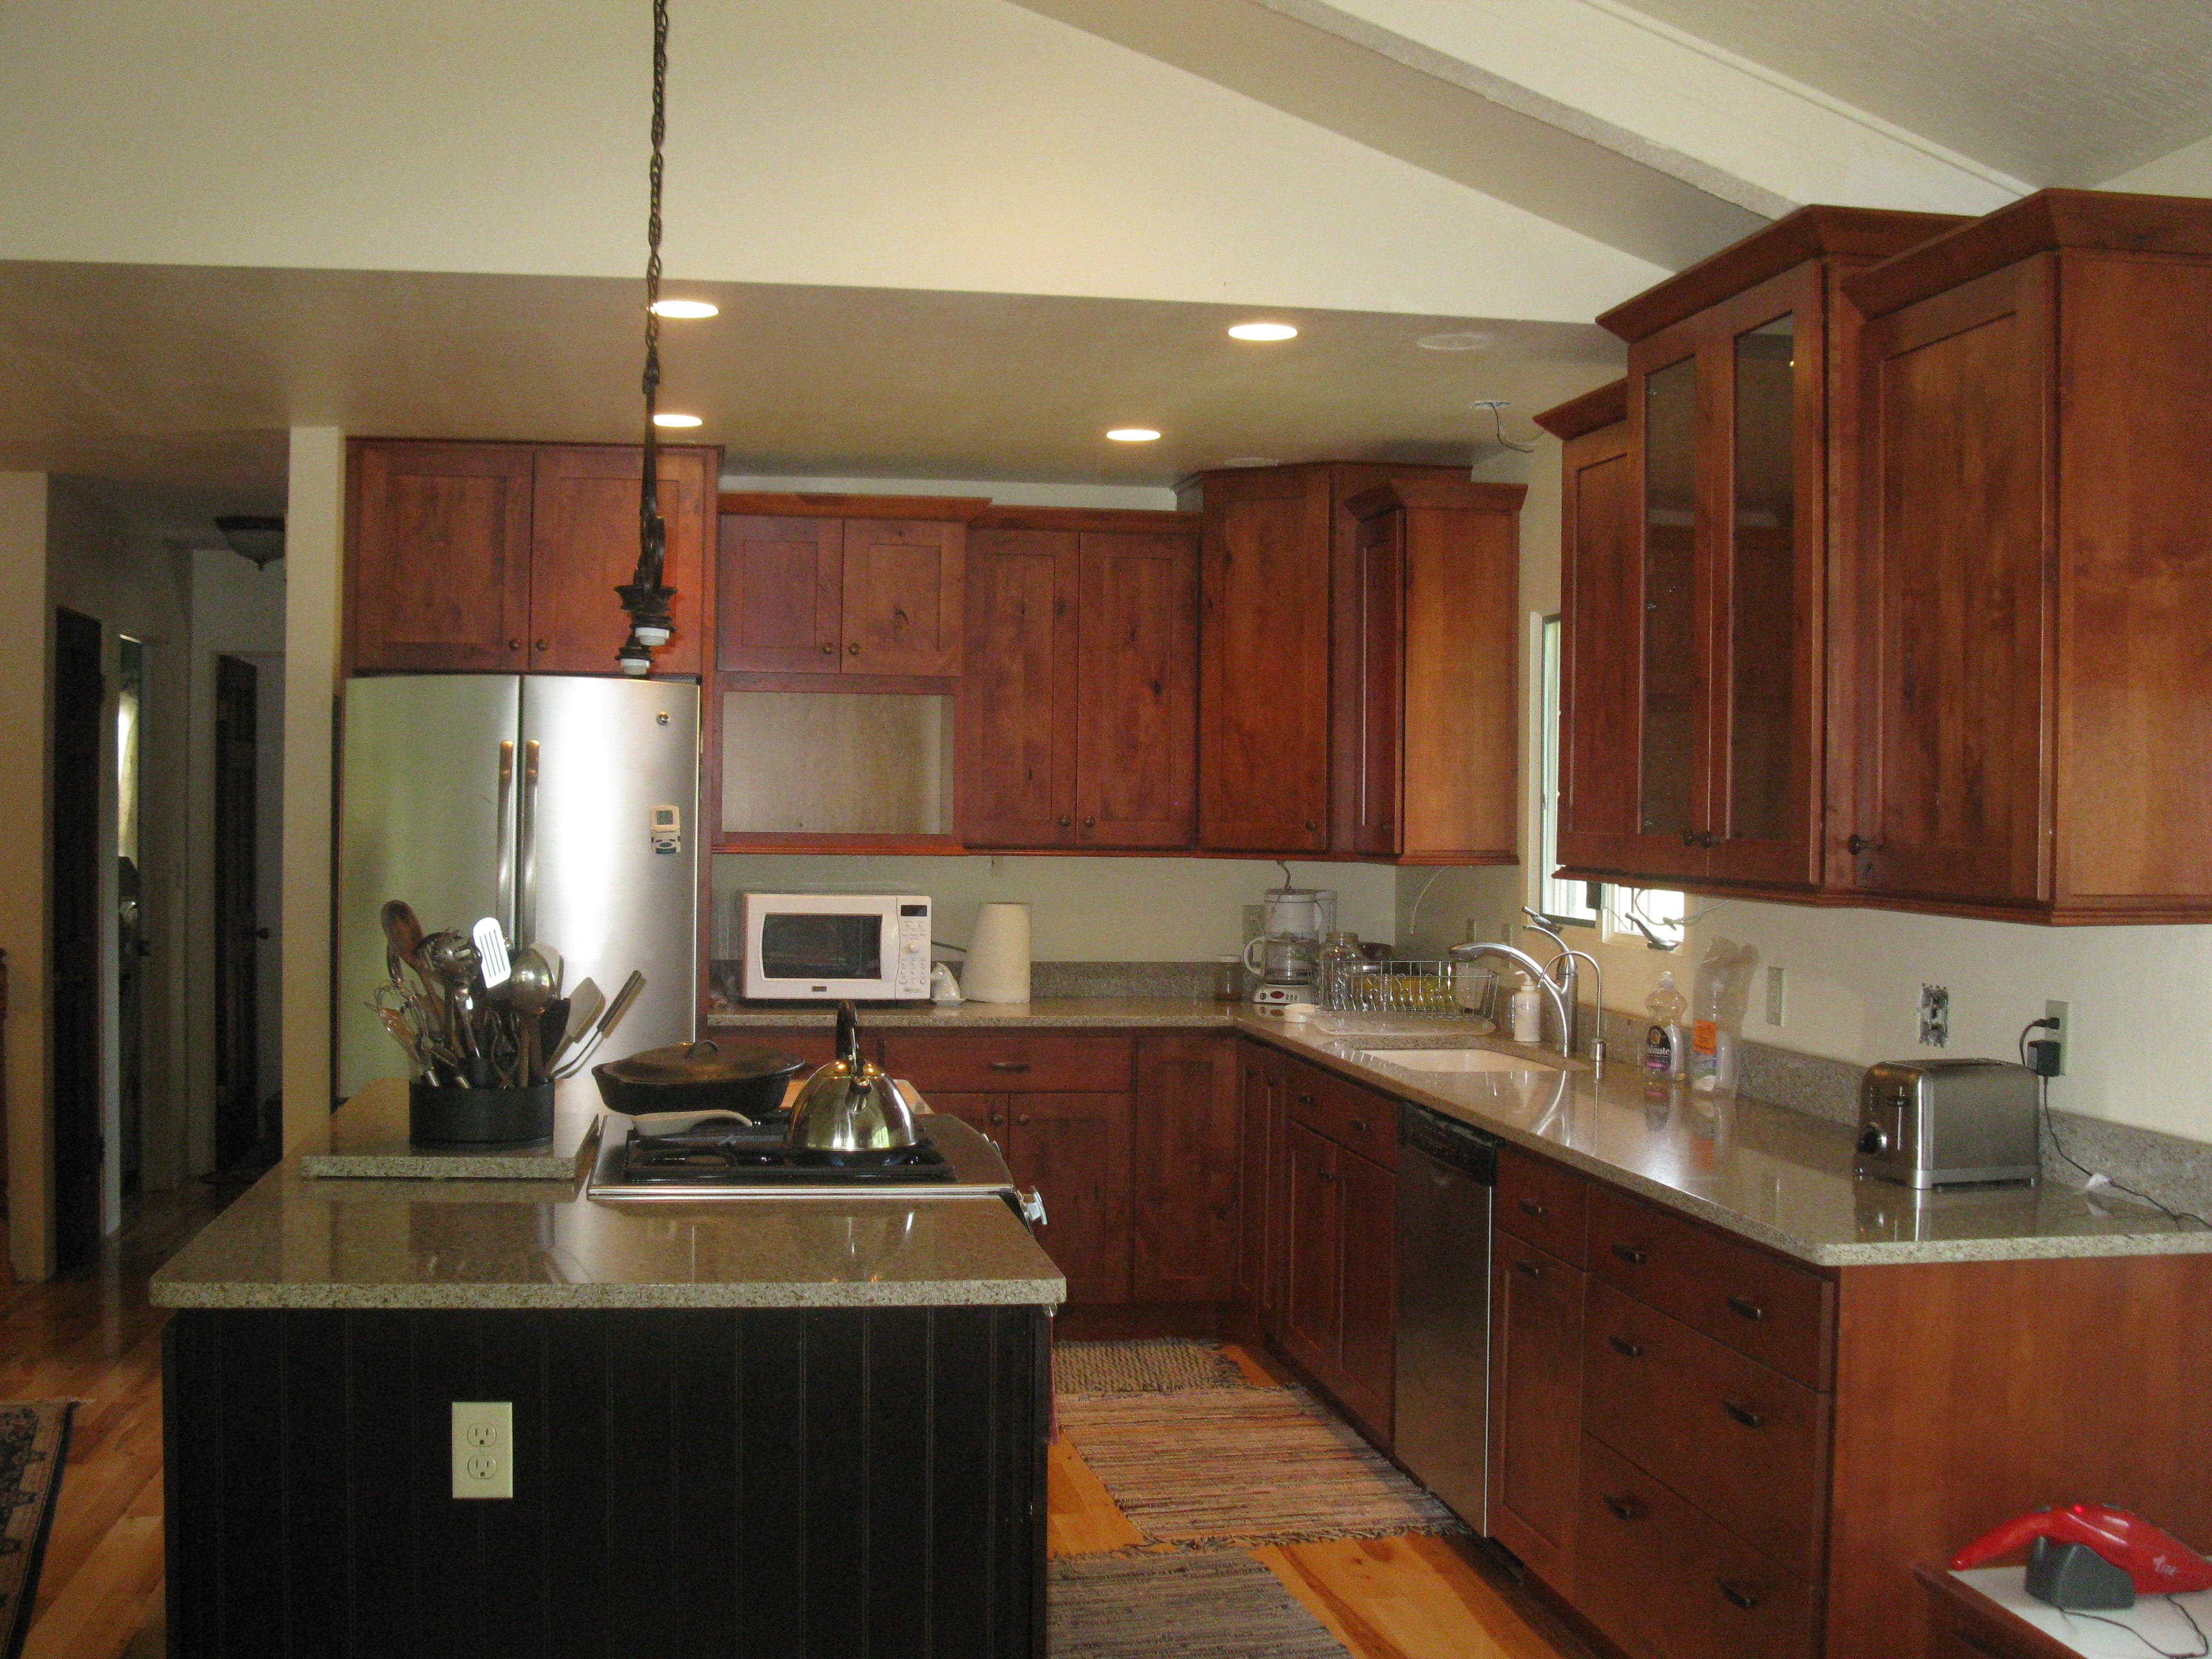 Kitchen Cabinet Installation is Completed